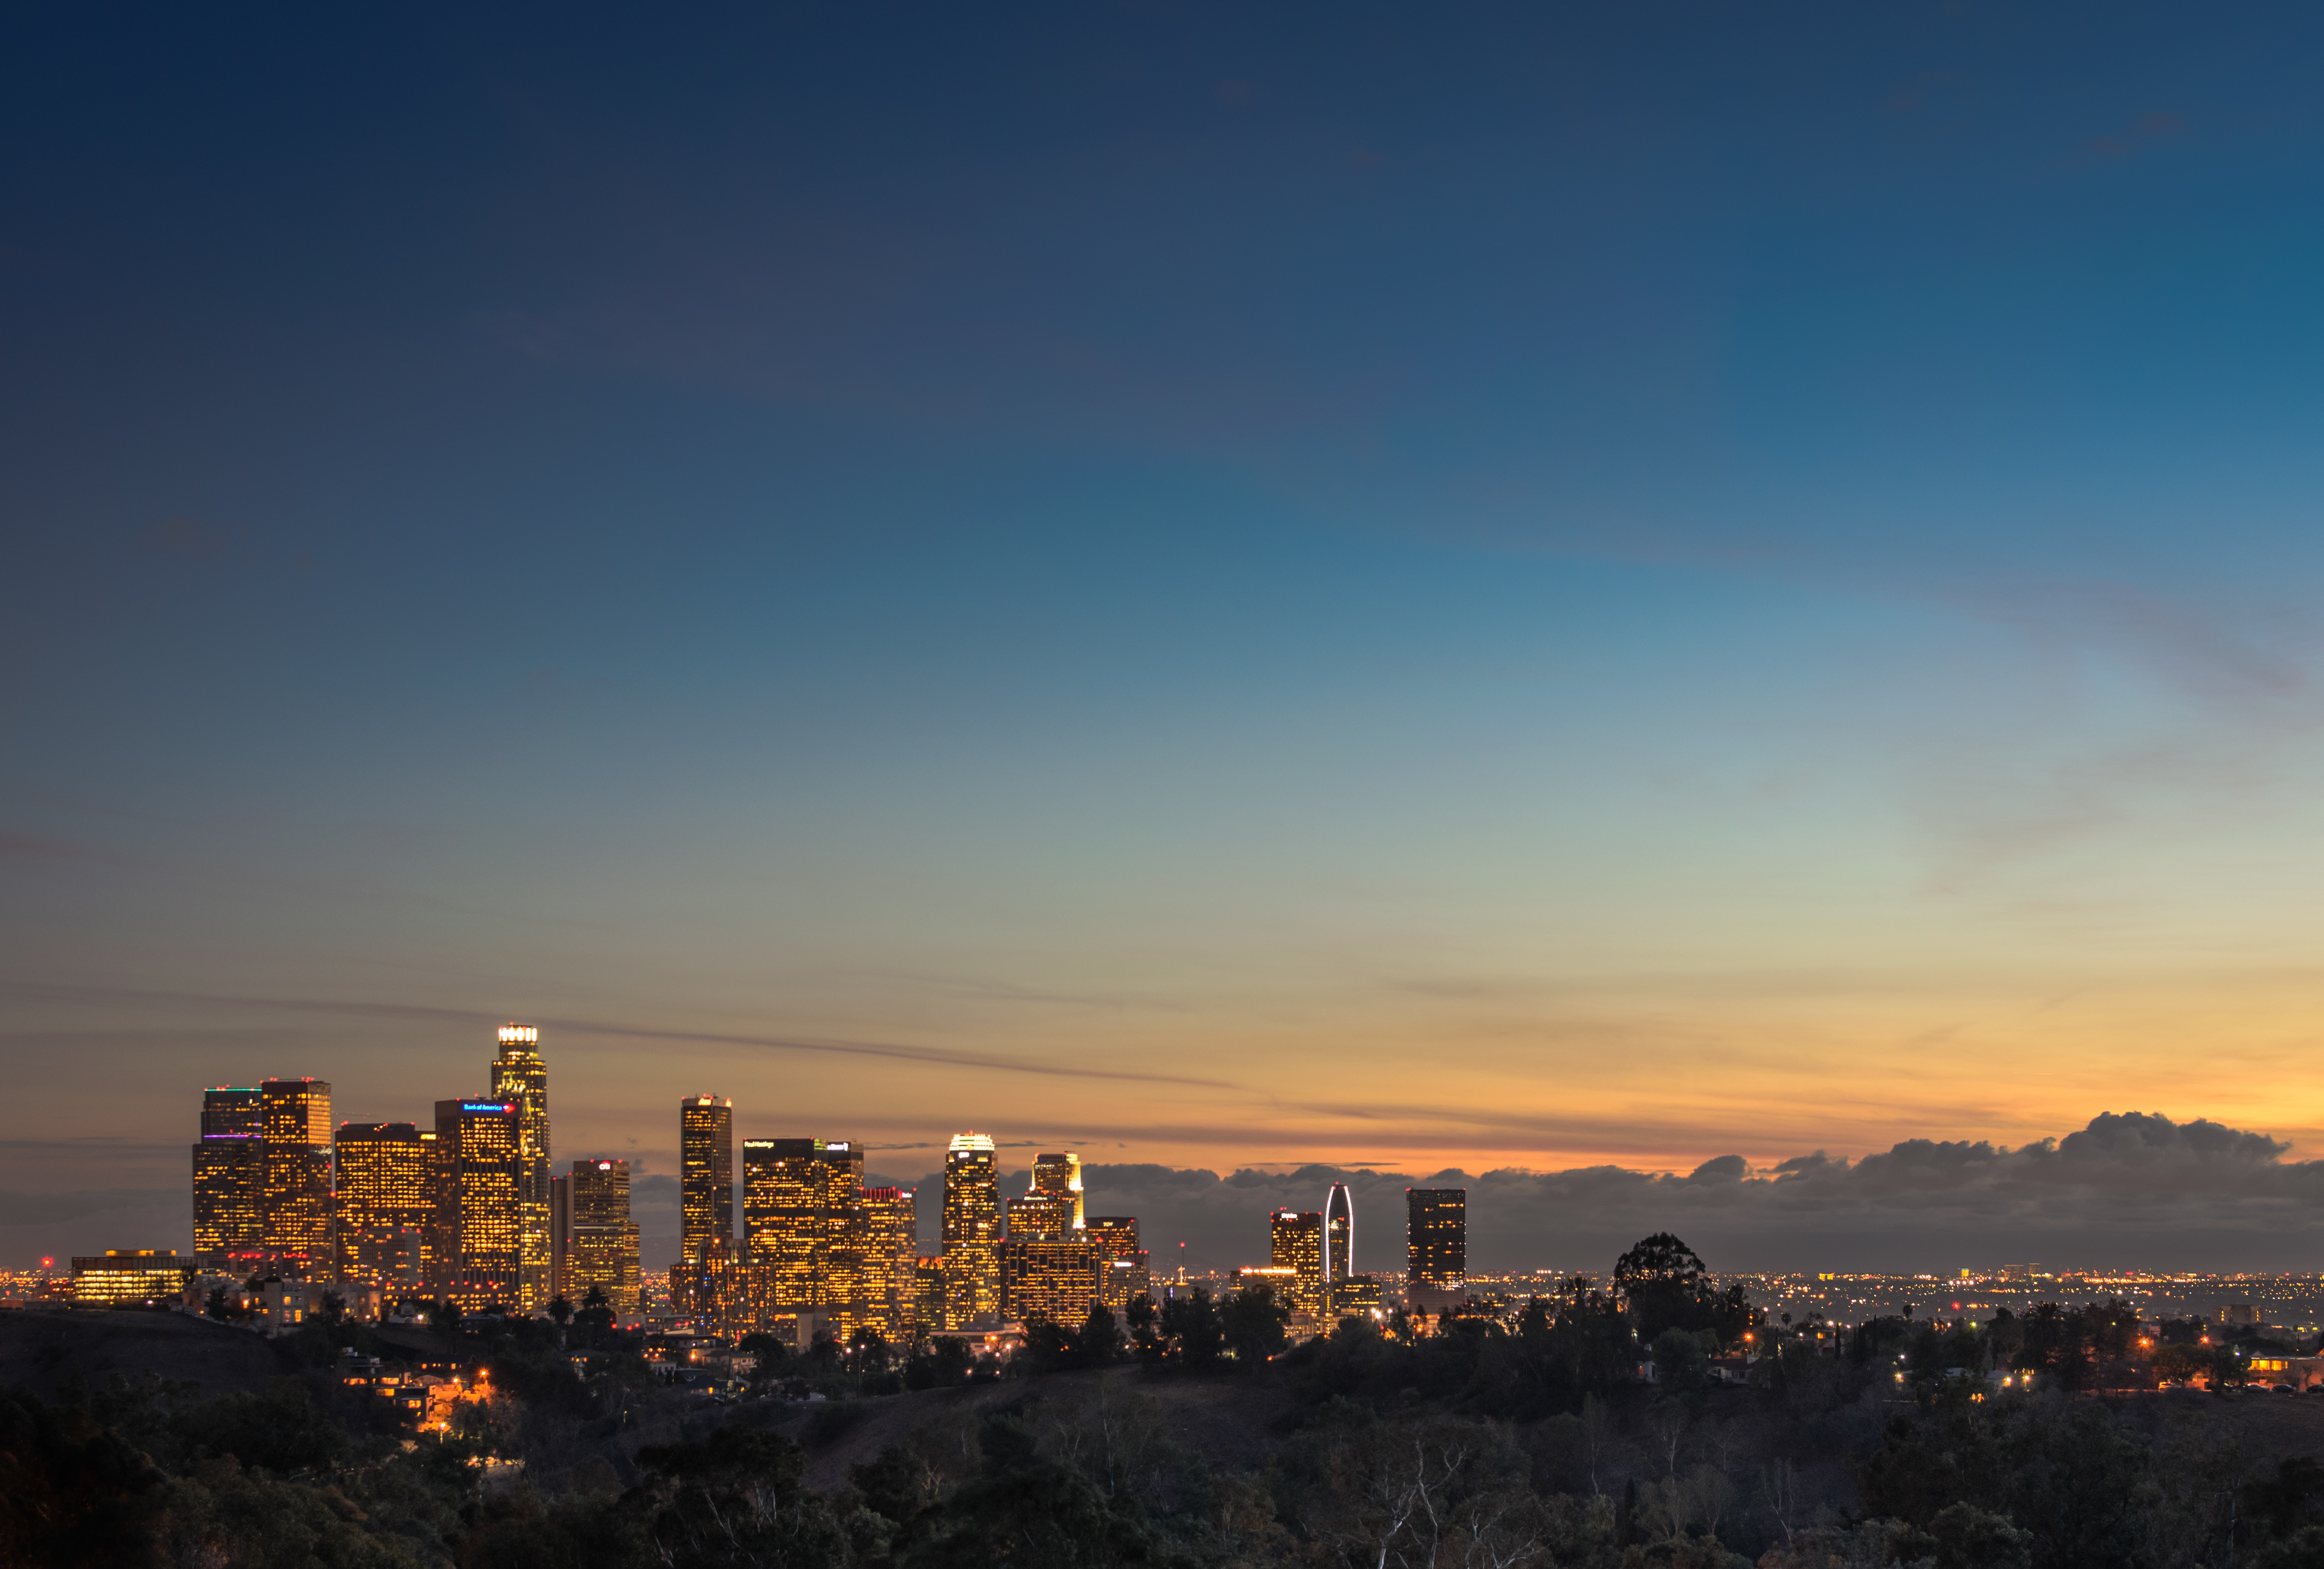 A ballot measure about density and big developments in L.A. could be headed to the November ballot. Photo by Steve Hymon.